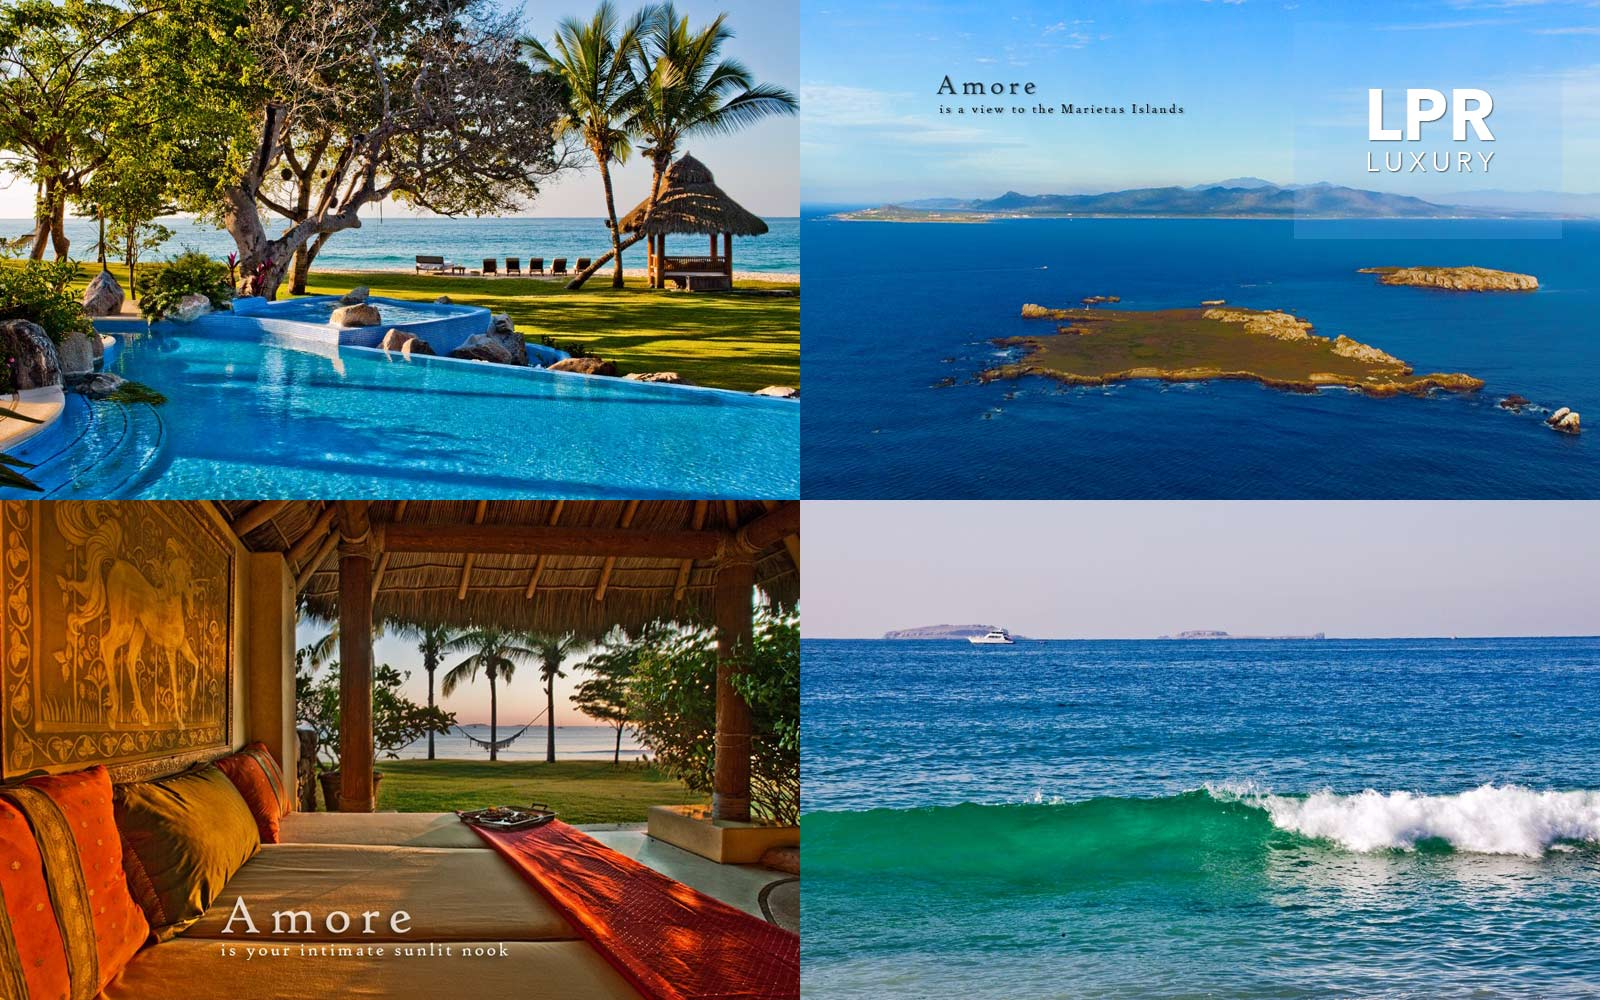 Villa Ranchos 1 - Casa Amore sits on soft white sand over­look­ing sun­sets, the Mari­etas Islands and the world renown Punta Mita Resort, Riv­iera Nayarit, home to the Four Sea­sons & The St. Regis resorts